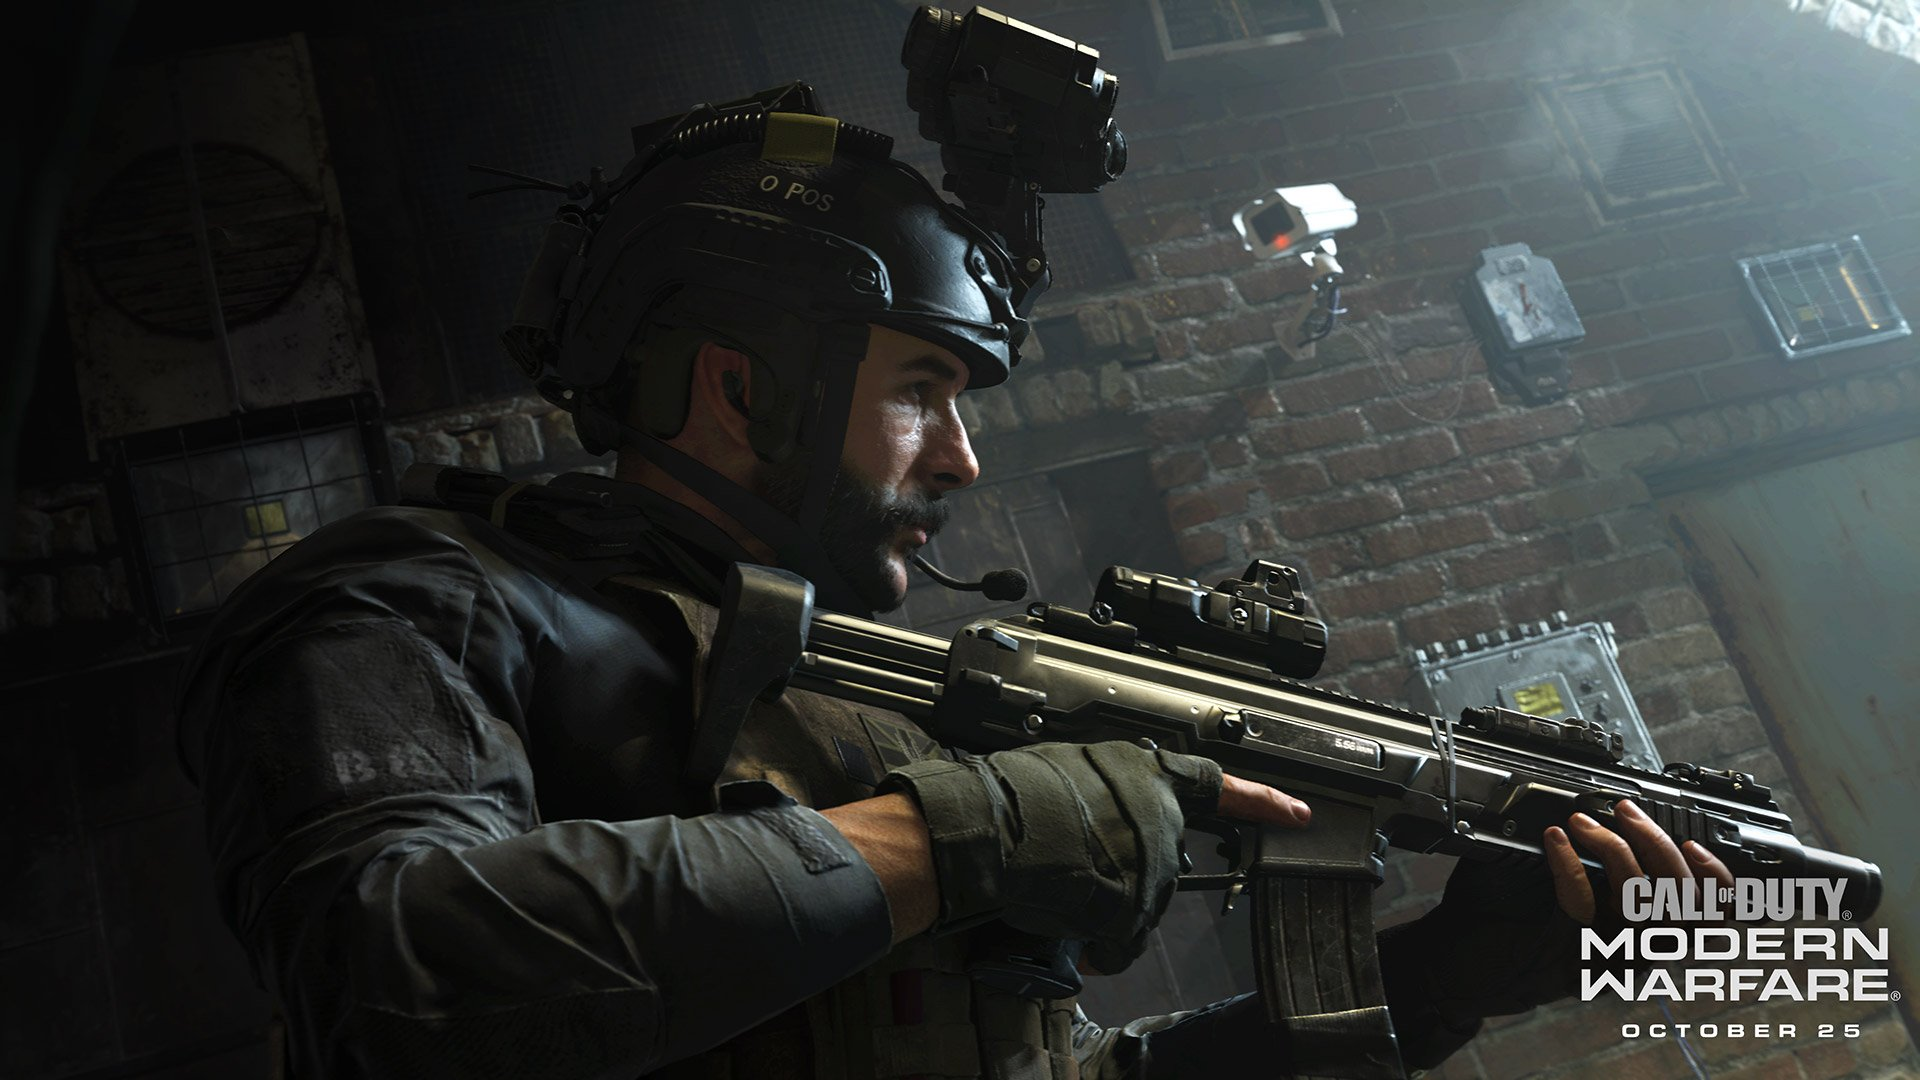 Call of Duty: Modern Warfare (2019) uses a new engine to great effect